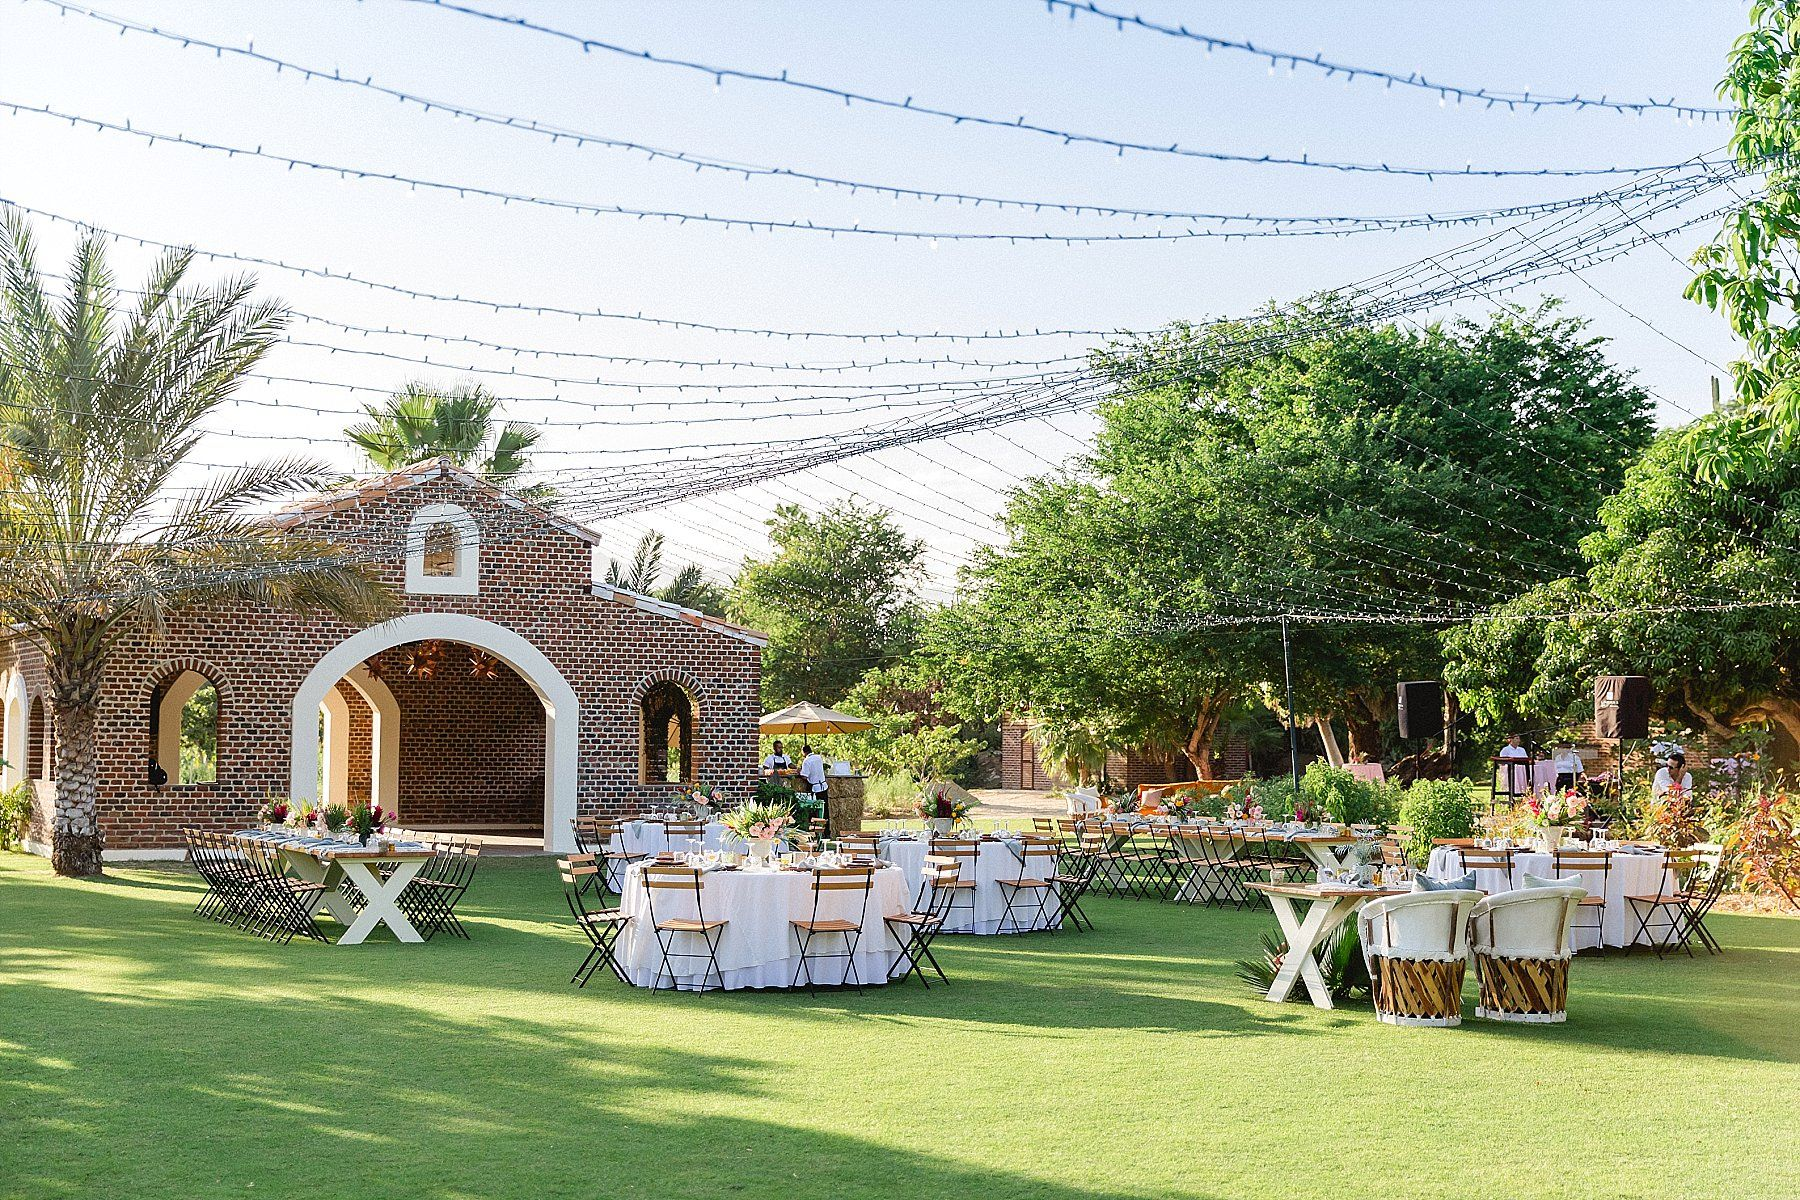 Wedding set-up at Flora Farms in Los Cabos Mexico. Wedding Planning by Cabo Wedding Services and Photography was done by Sara Richardson Photo. Rentals were by Let it Be Events and Florals with Designs was done by Lola from Florenta.